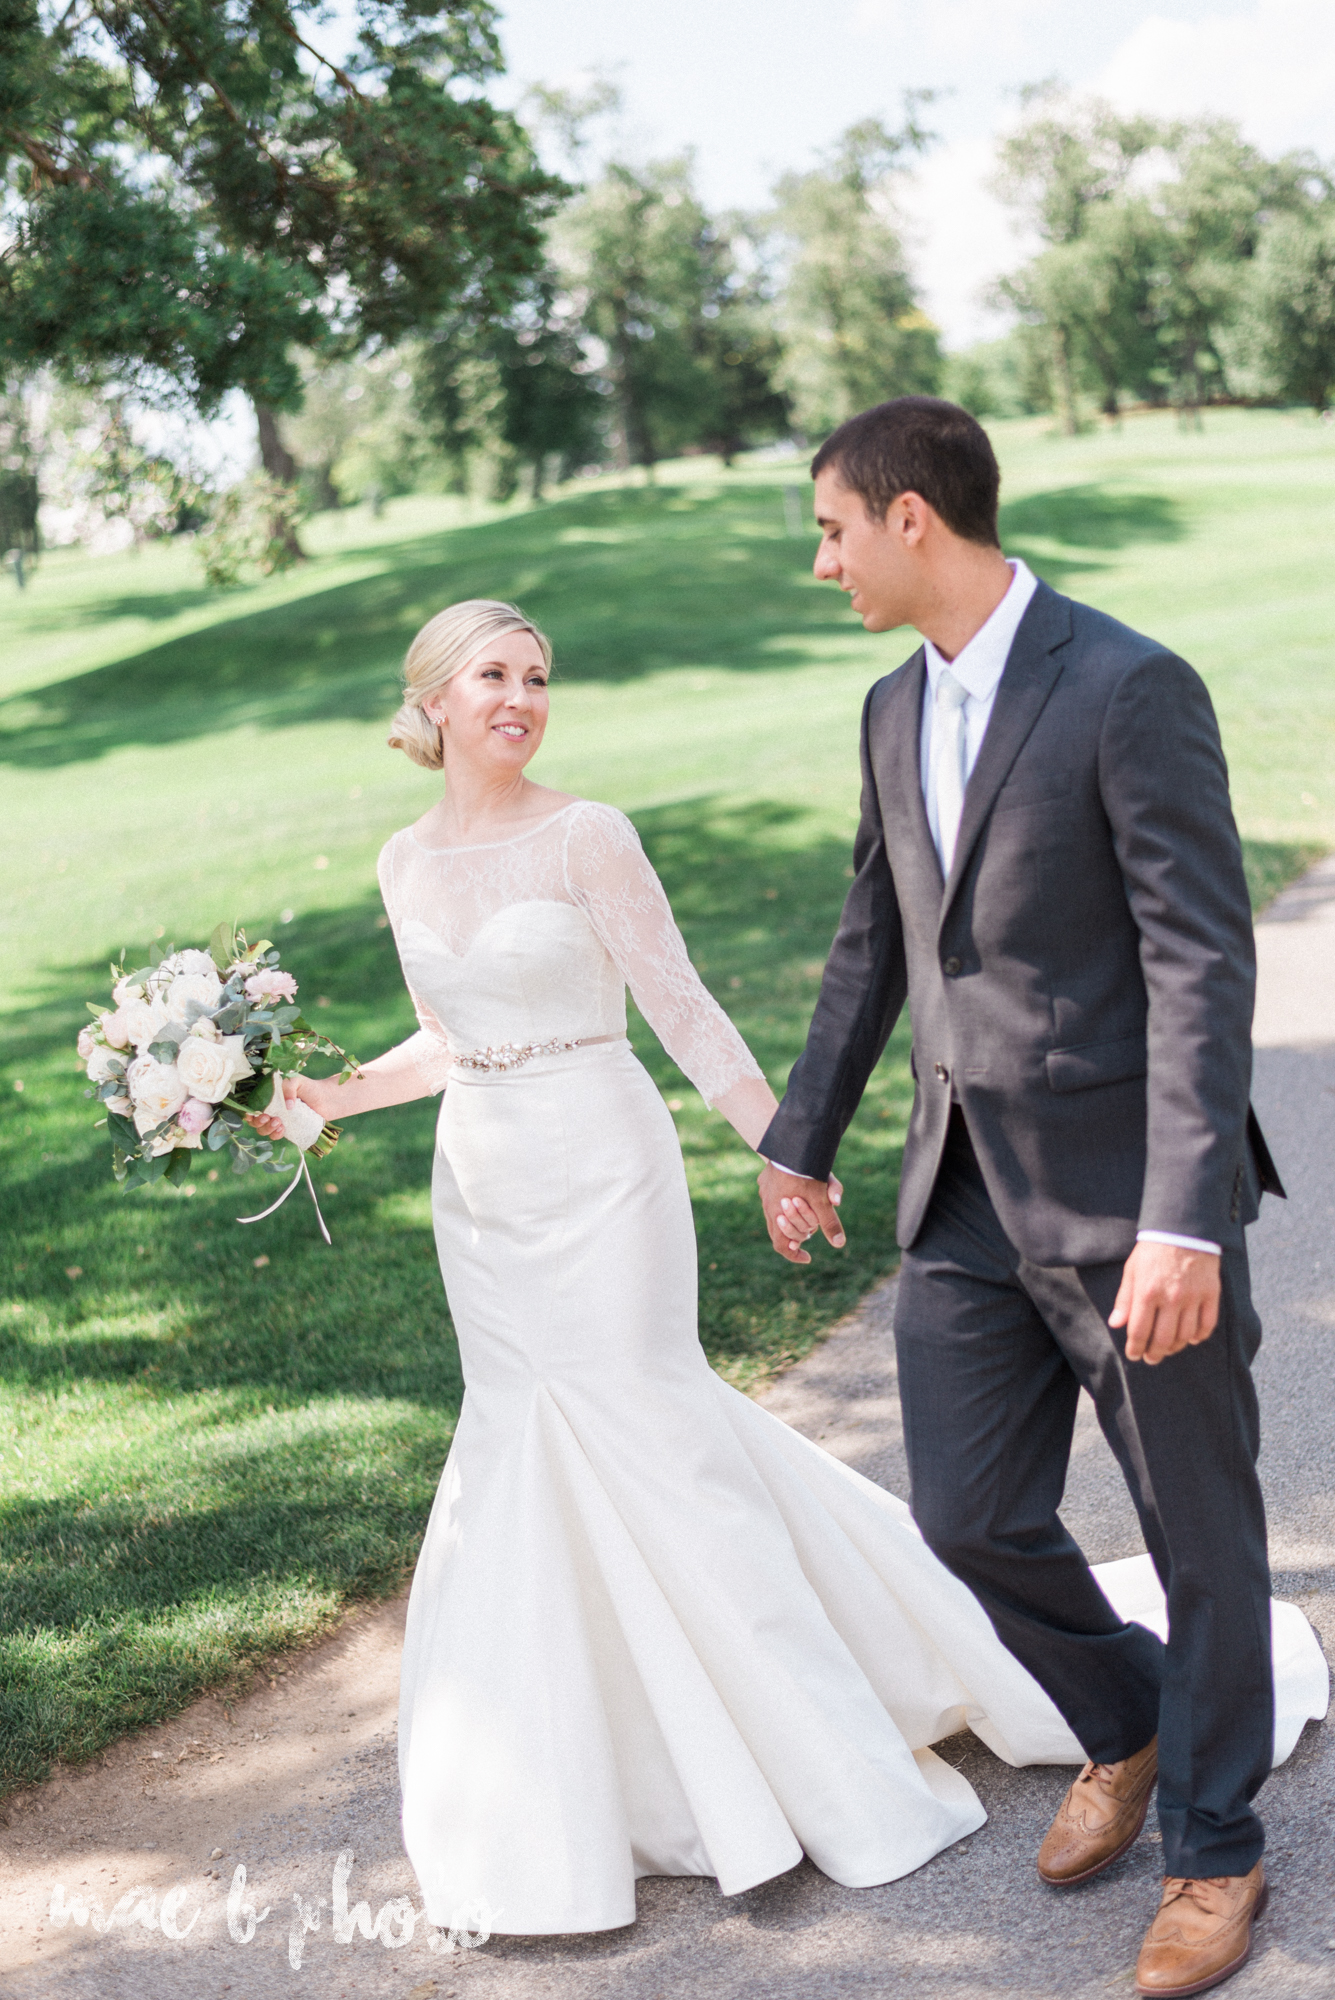 emily and michael's industrial chic summer country club wedding at the lake club in poland ohio photographed by cleveland wedding photographer mae b photo-63.jpg